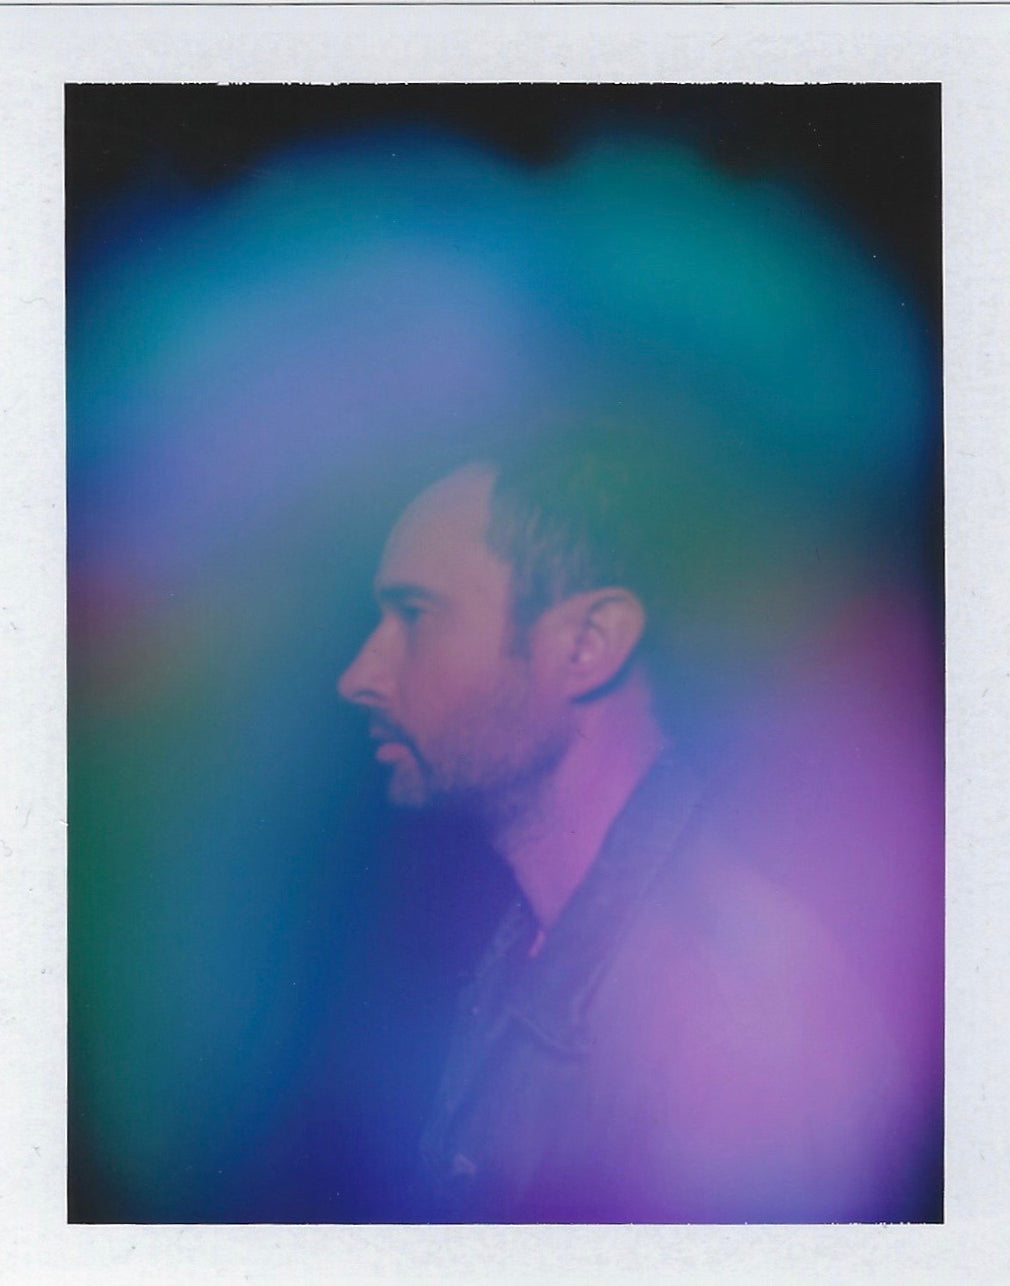 A photo of Etheric Body founder Michael Walker's blue, green and purple aura photograph by Halo Auragraphic.